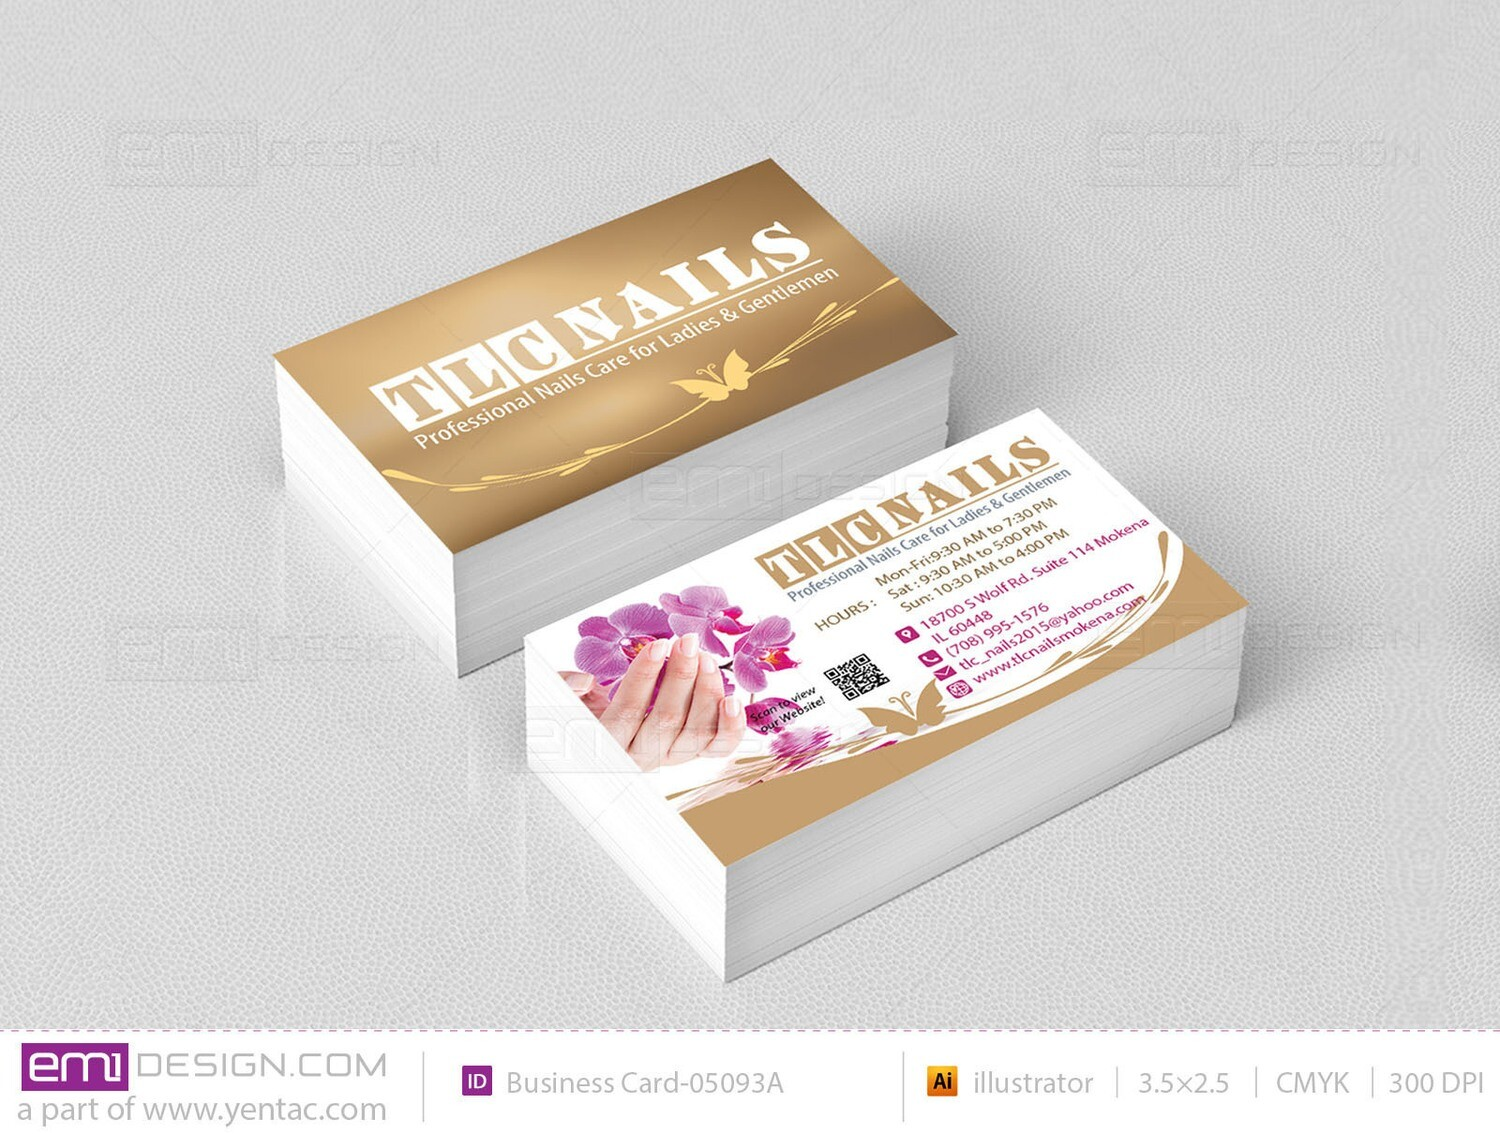 Business Card - Template BusCard-05093A